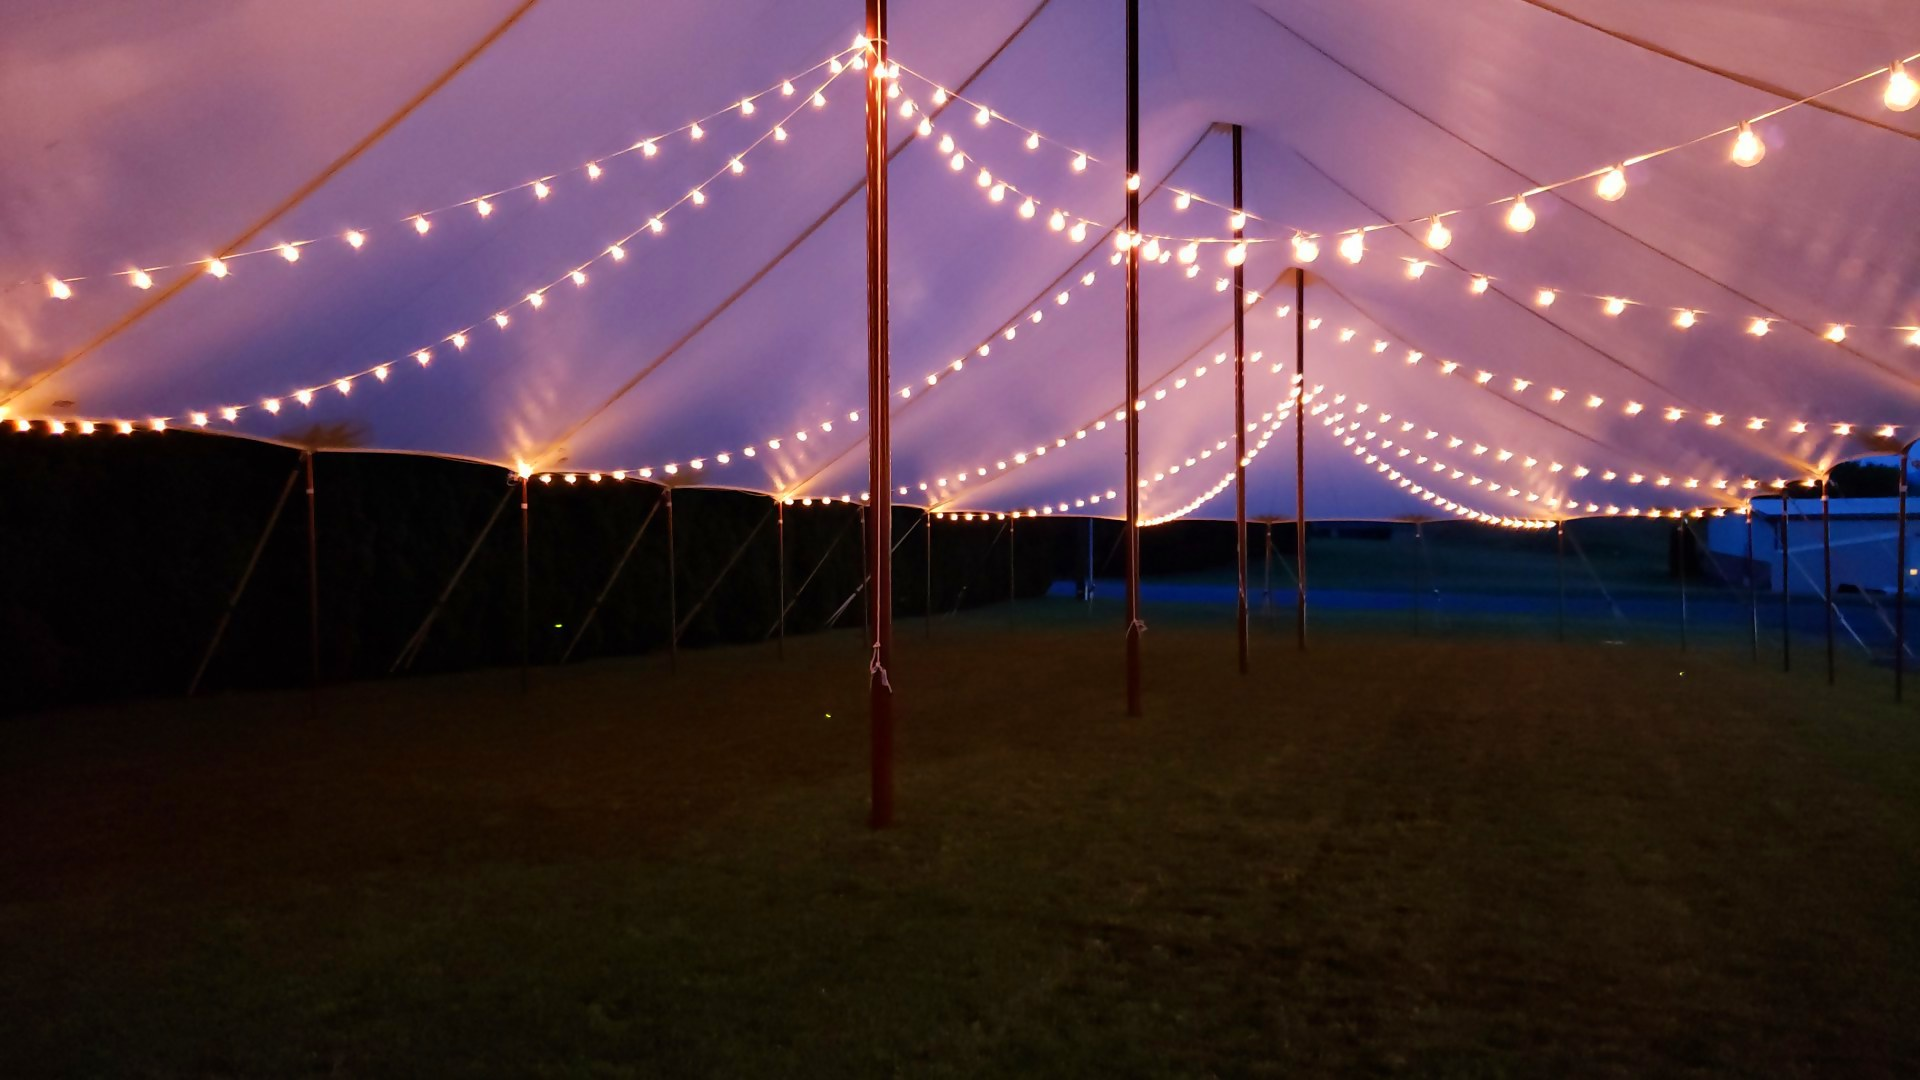 Cafe lights in a sailcloth tent